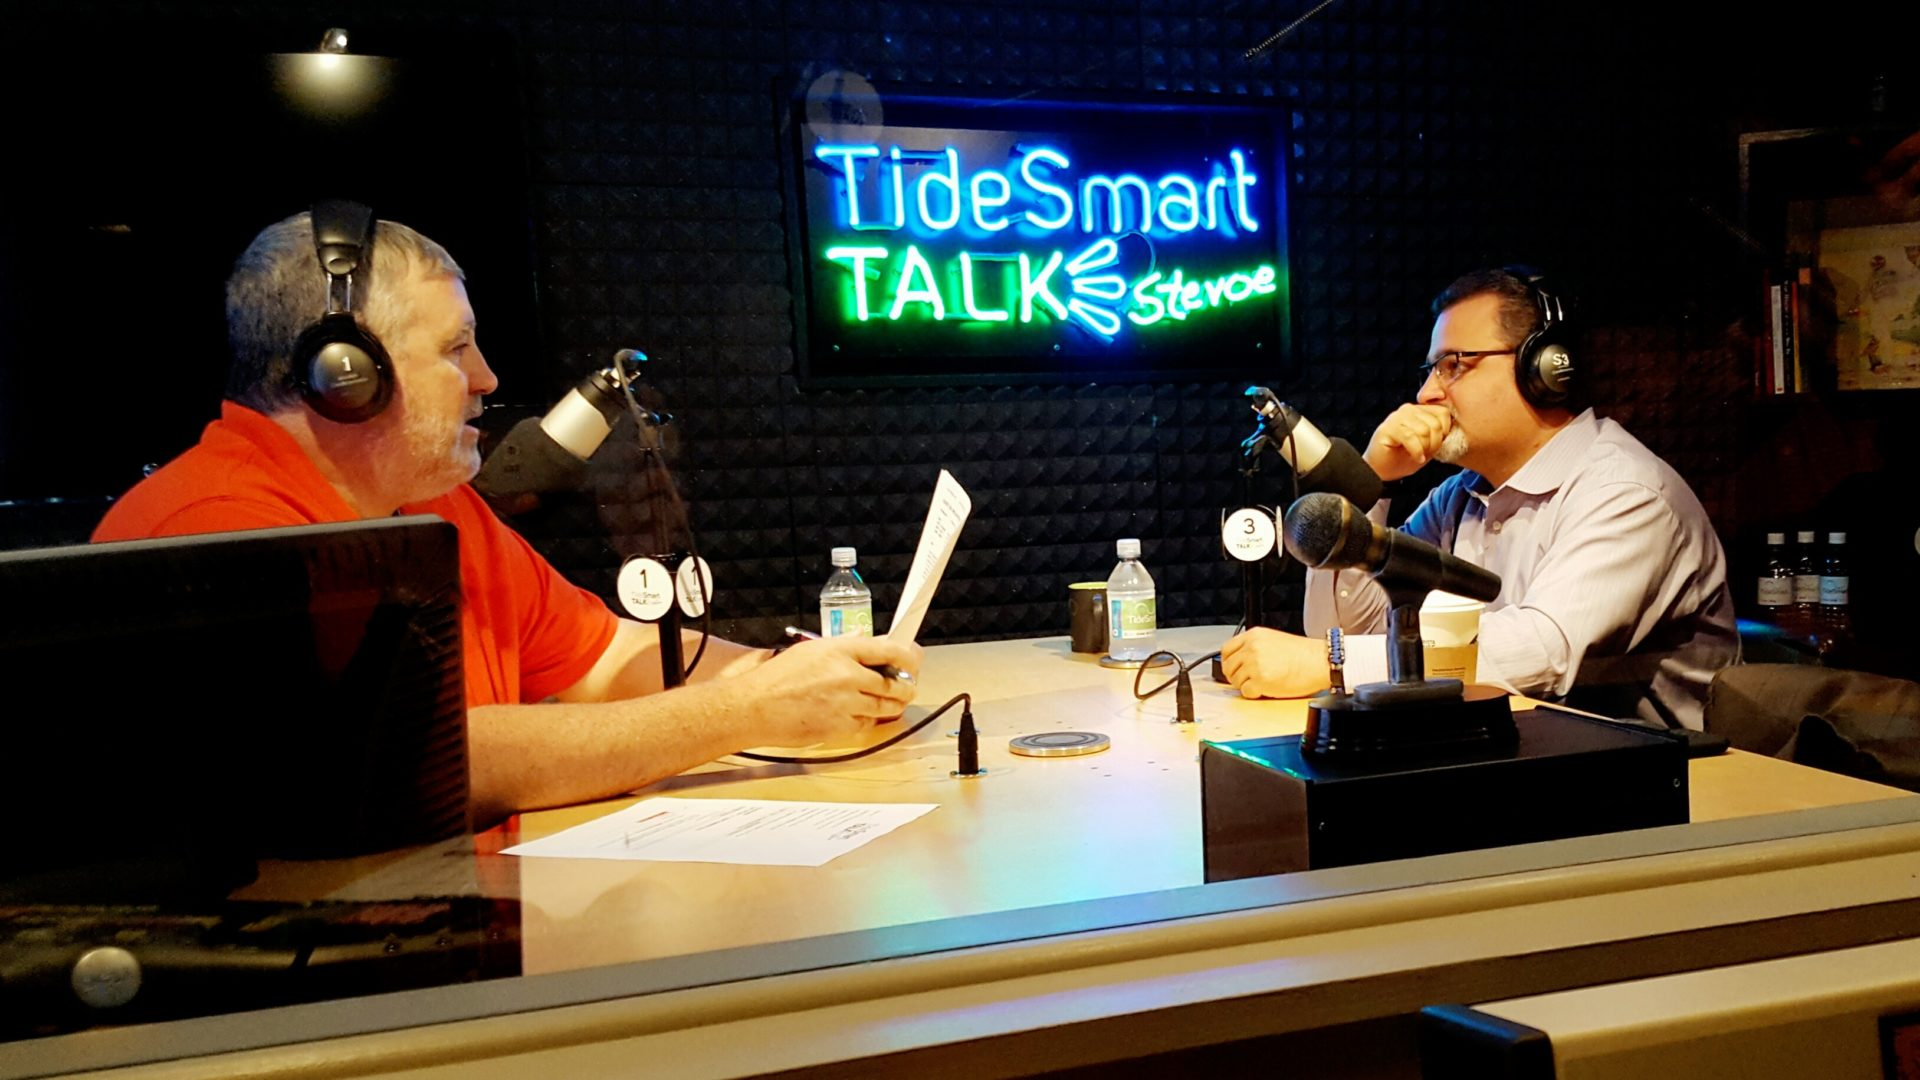 Host of TideSmart Talk with Stevoe, Steve Woods, welcomed Dr. Melik Peter Khoury, President of Unity College (at right).